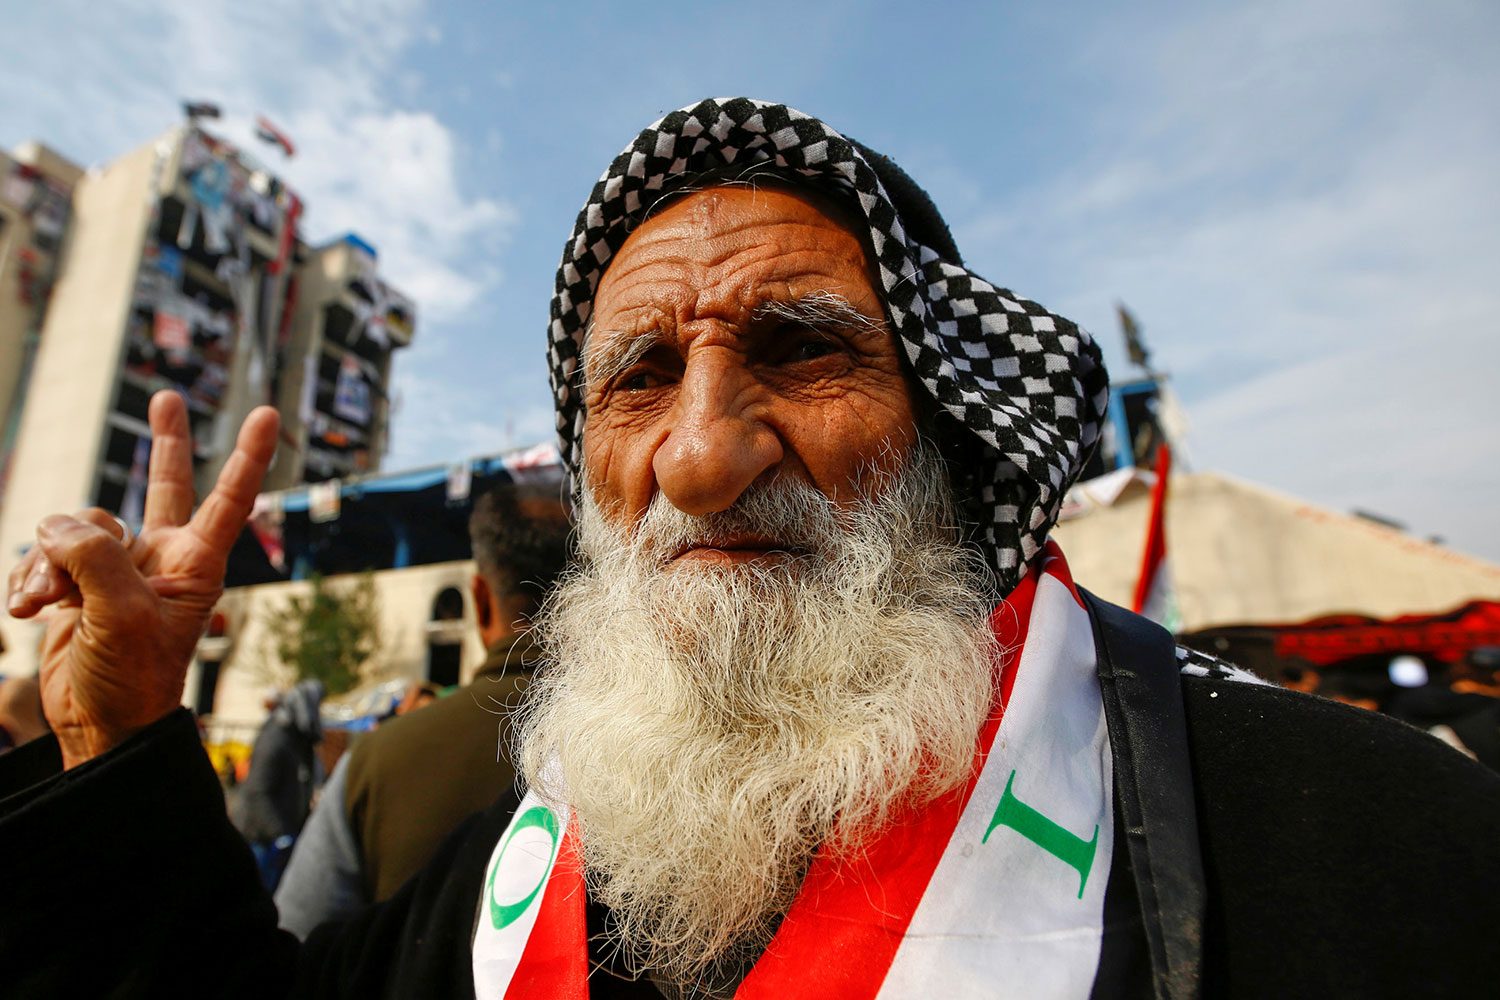 An elderly demonstrator poses for the camera as he makes a V-sign during ongoing anti-government protests, in Baghdad, Iraq, December 10, 2019. He has a black-and-white checkered scarf tied on his head and a red and white sash with green accents, around his neck. He has a very long white beard and friendly eyes. REUTERS/Alaa al-MarjaniSELECT